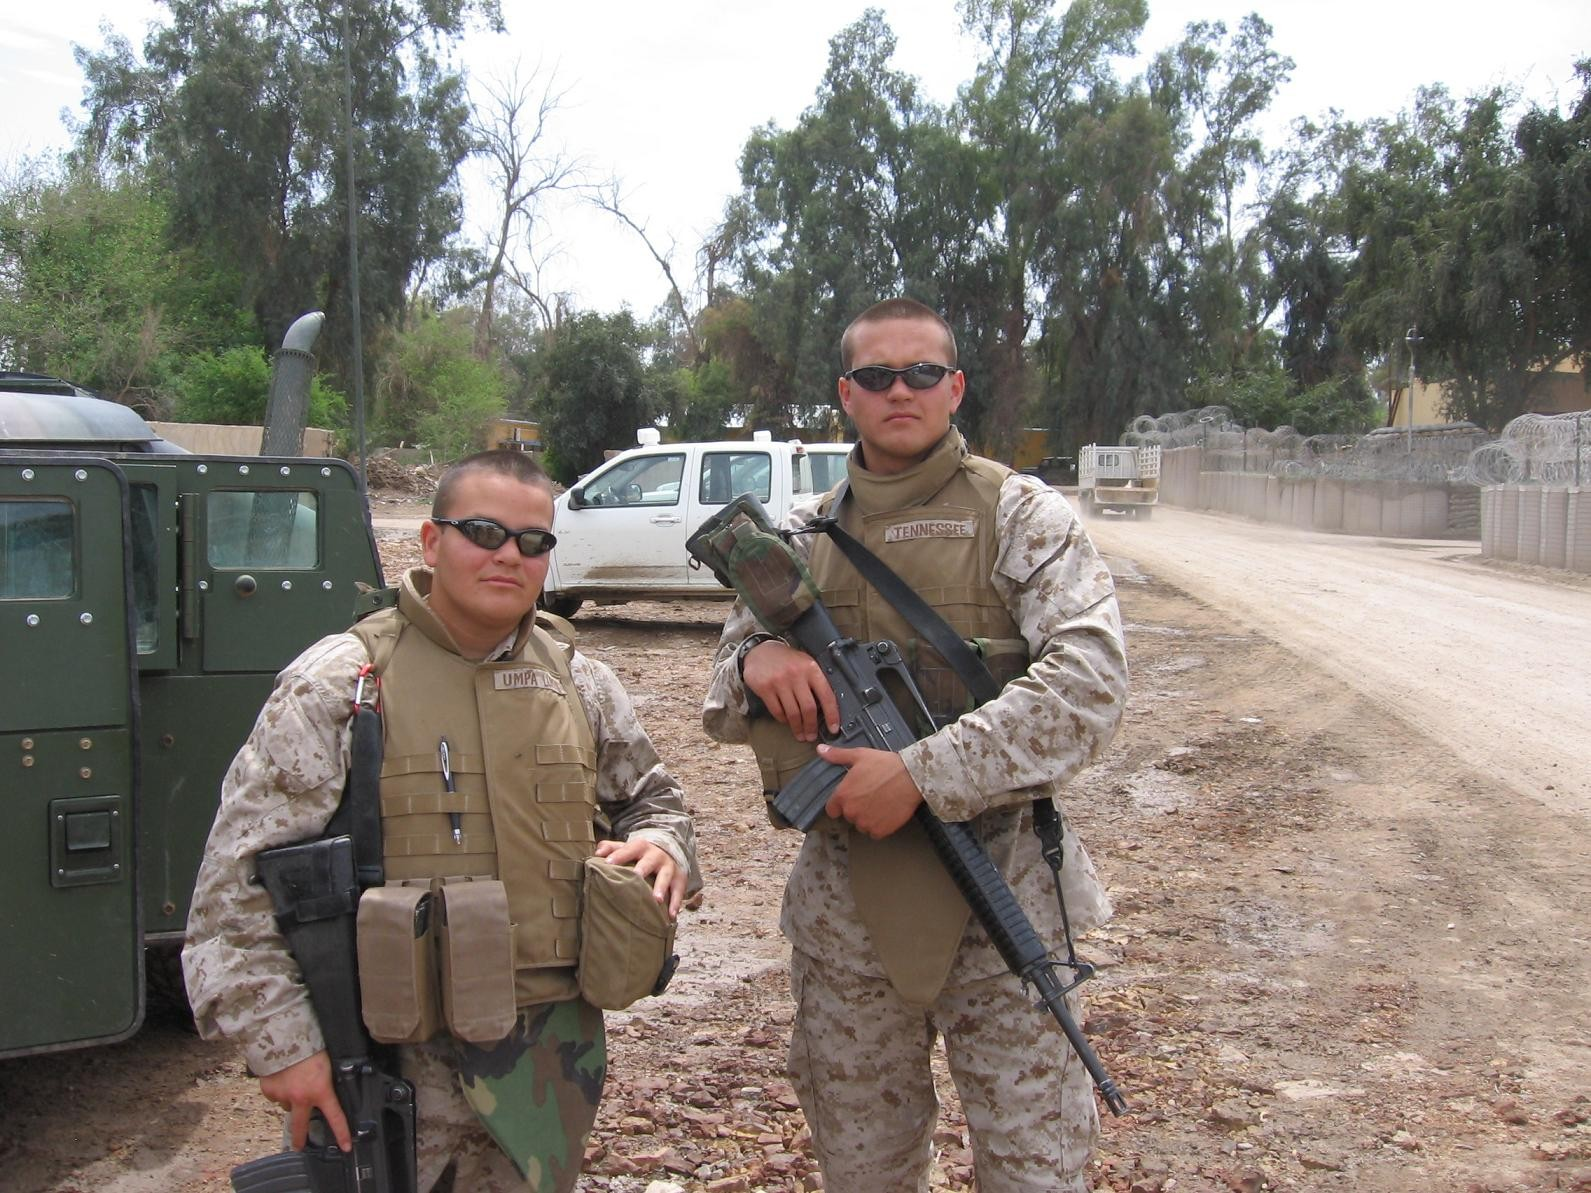 William Felty (right) saw combat as a Marine in Iraq.